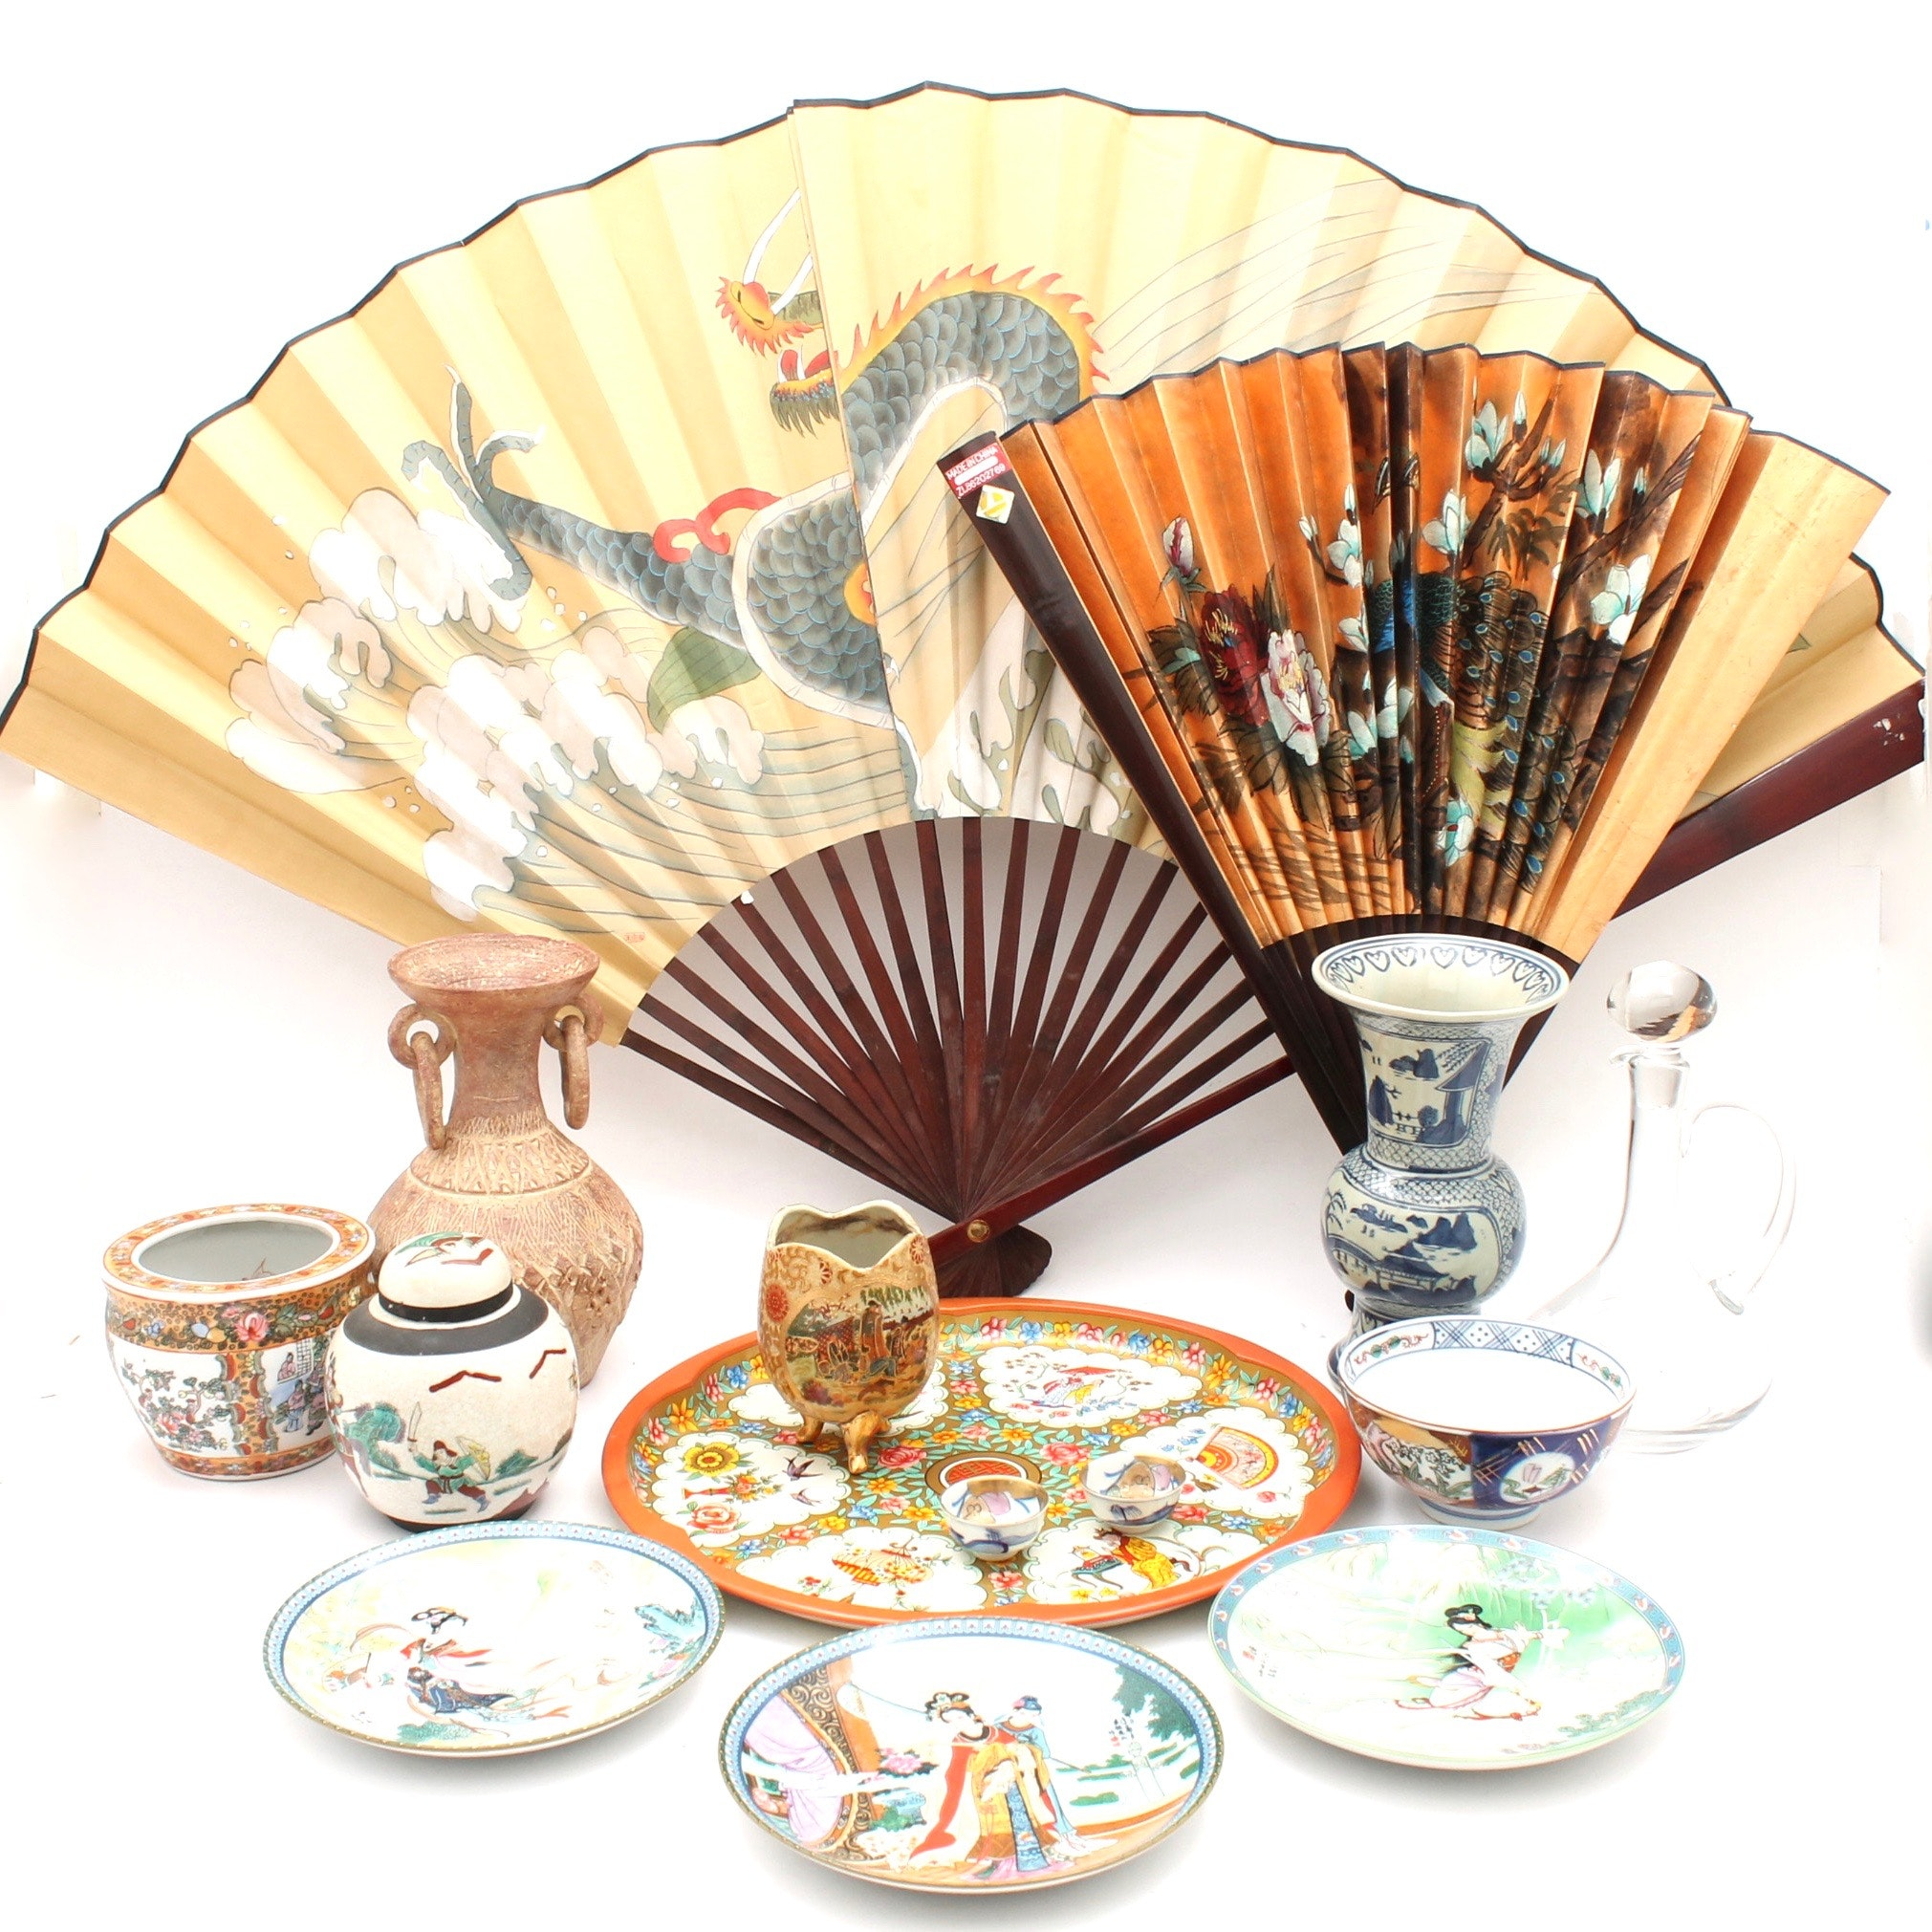 Imperial Jingdezhen Plates and Chinese Decor